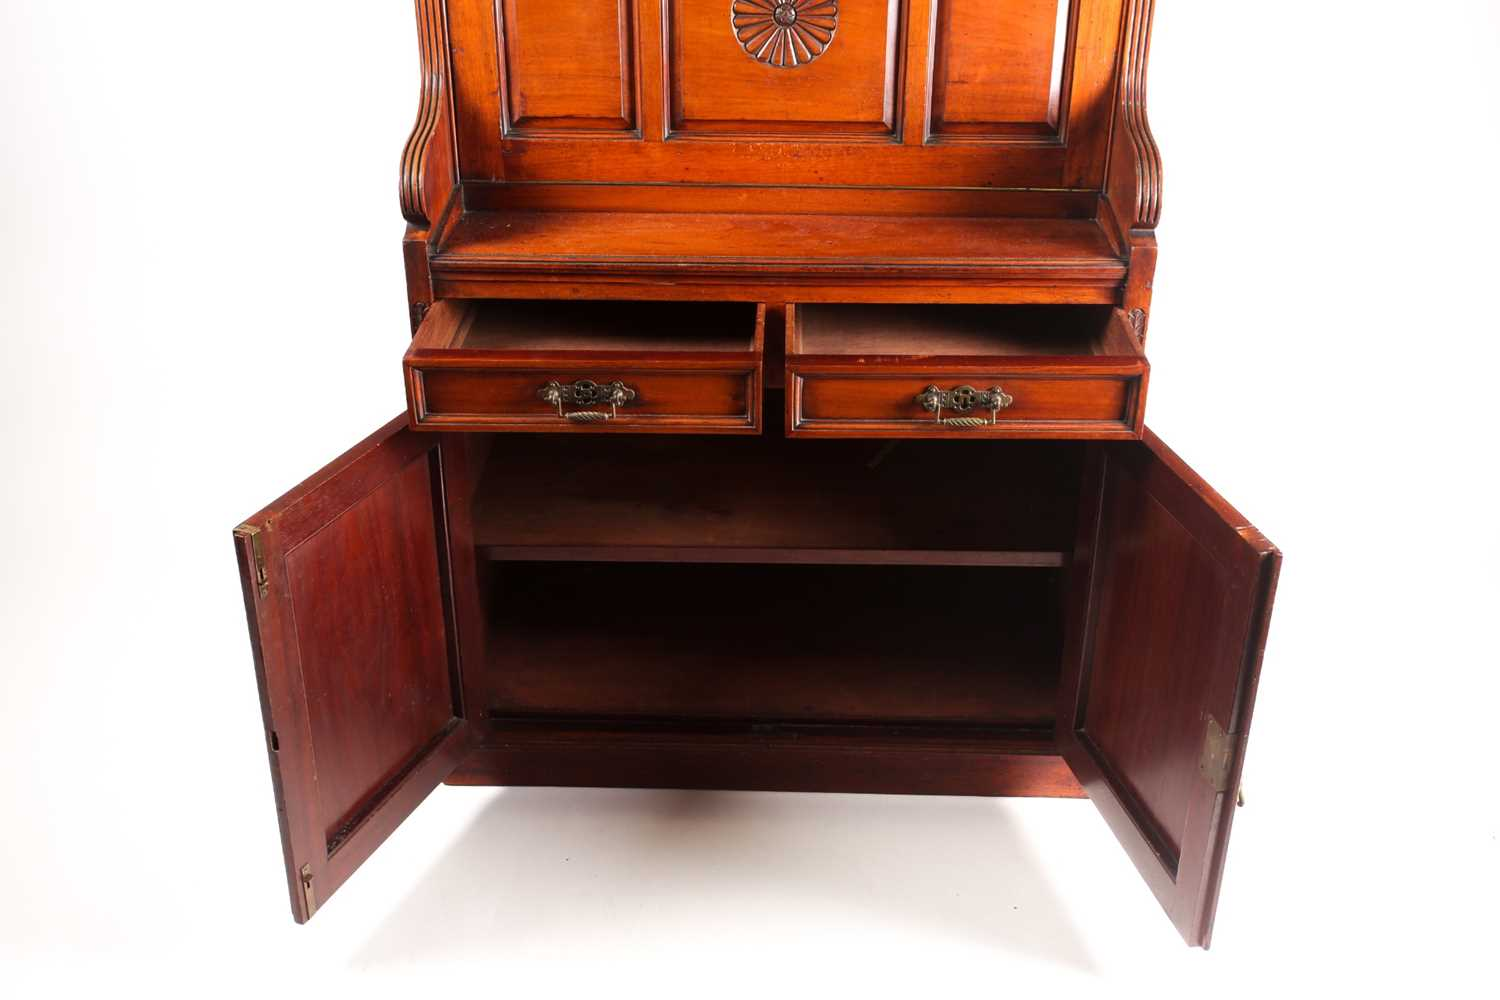 A late 19th-century Aesthetic design walnut fall front secretaire with fitted and leathered - Image 5 of 6